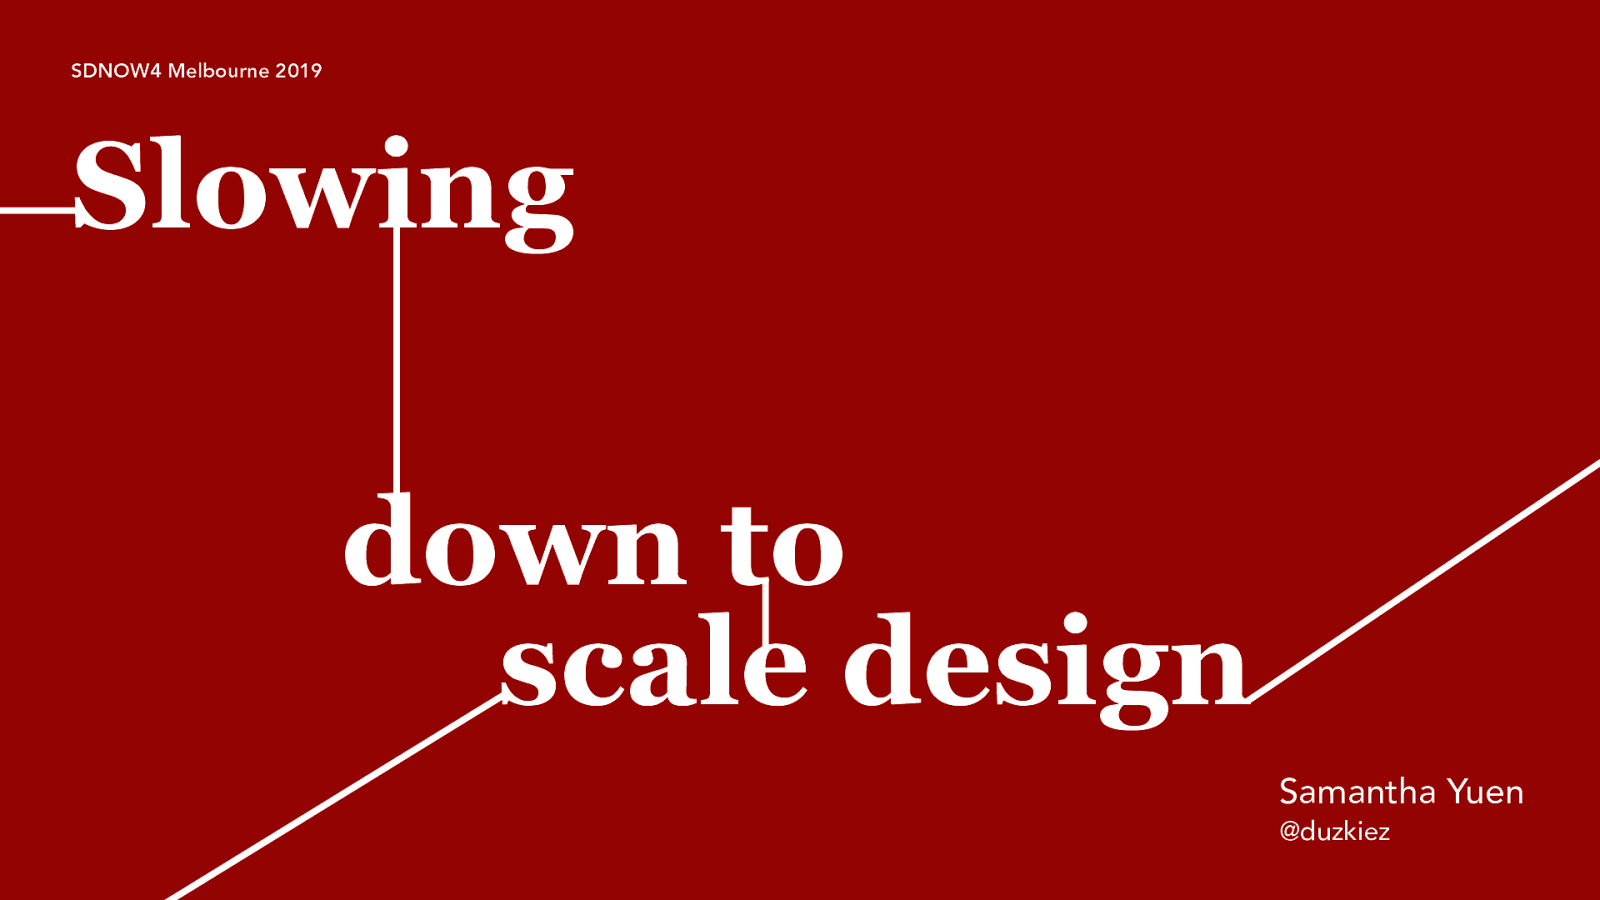 Slowing down to scale design